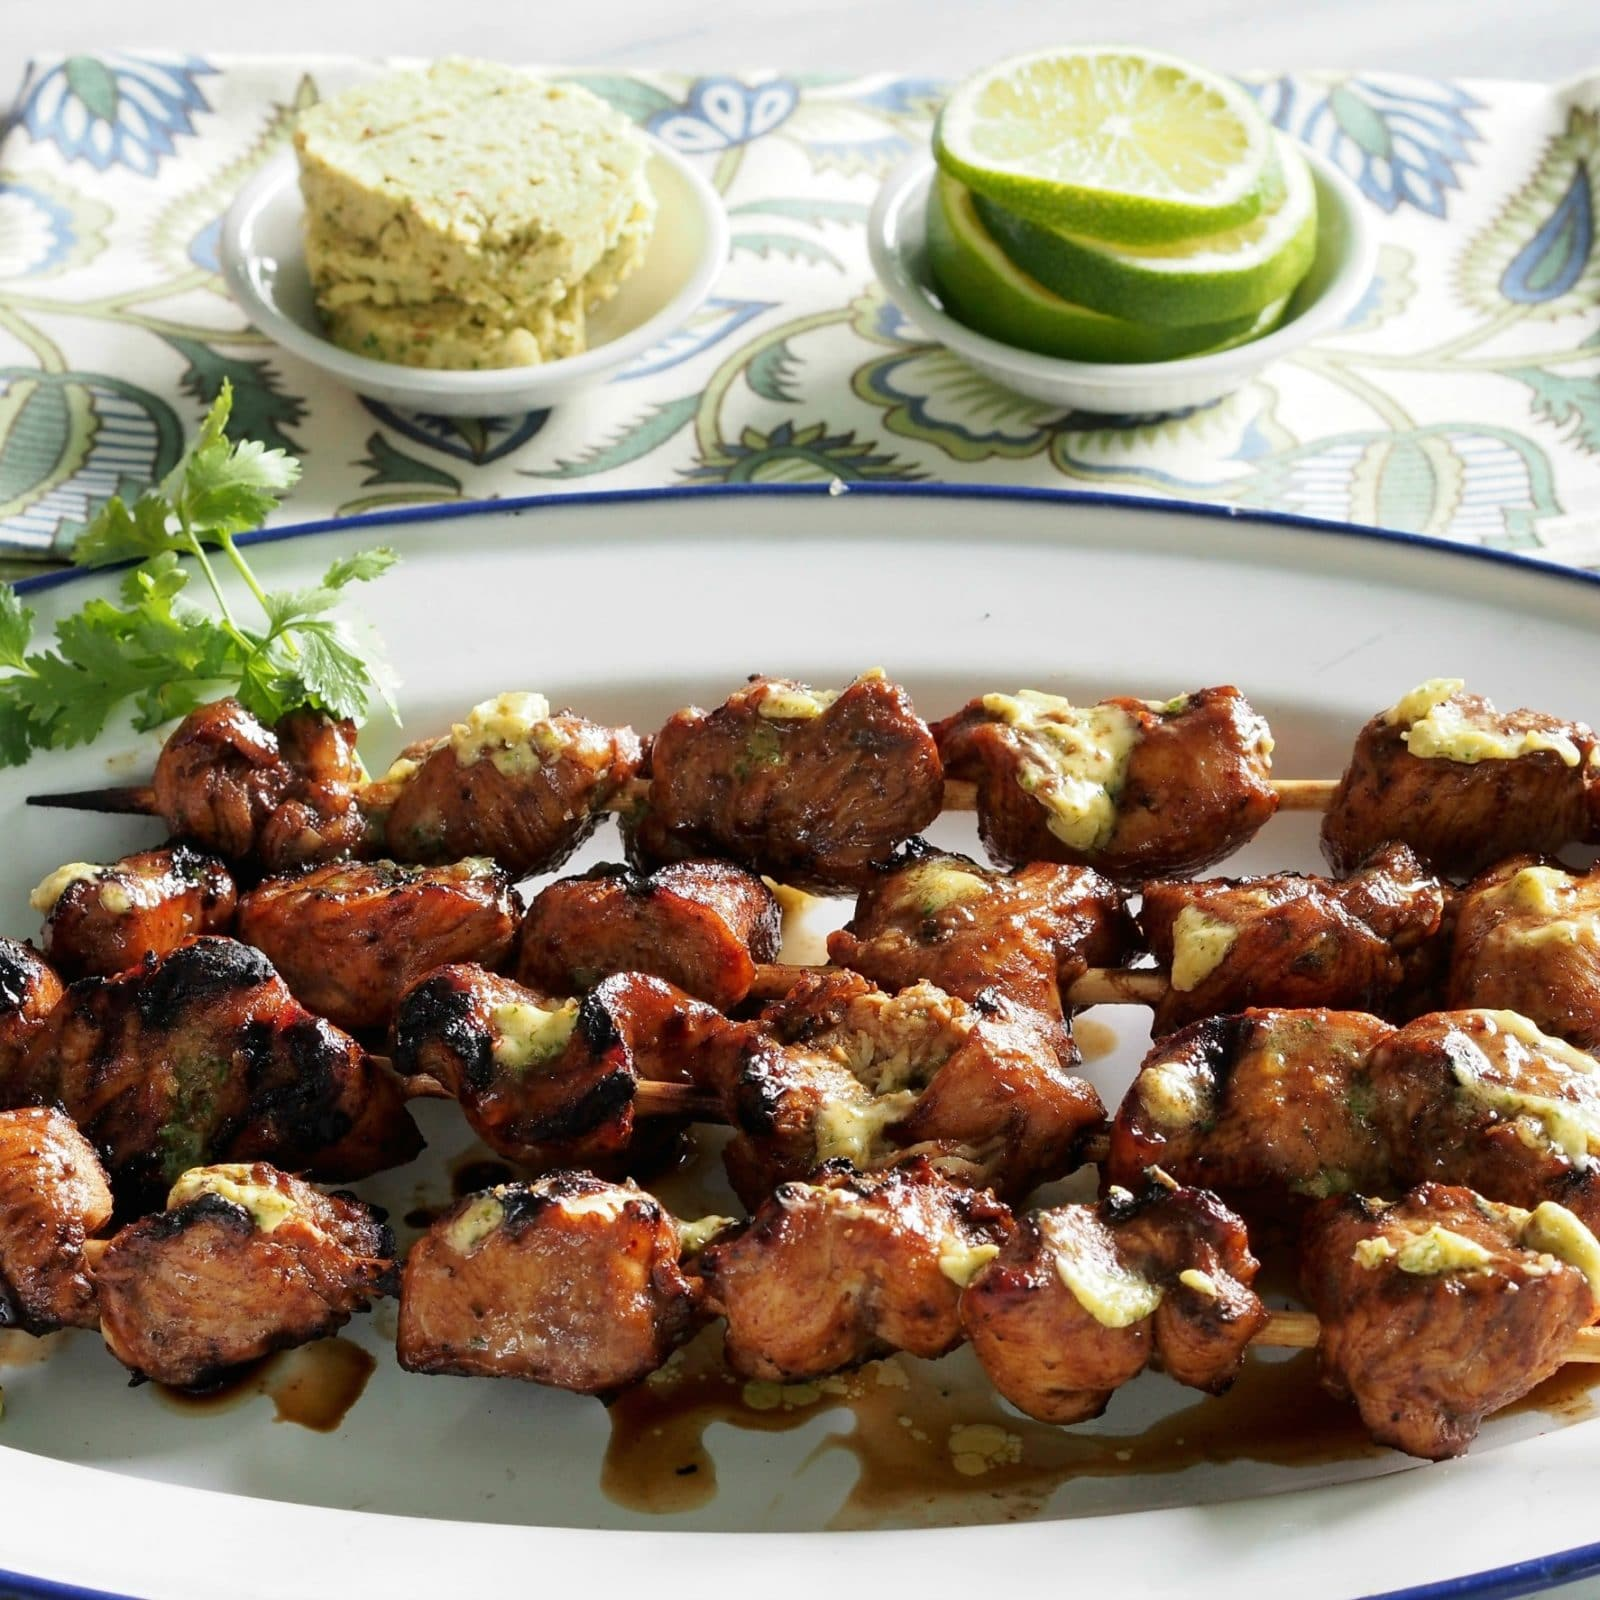 Grilled Chicken with Cilantro Lime Honey Butter has flavors from the Southwest, Mediterranean and Jamaica made extra special topped with cilantro honey butter. www.simplysated.com